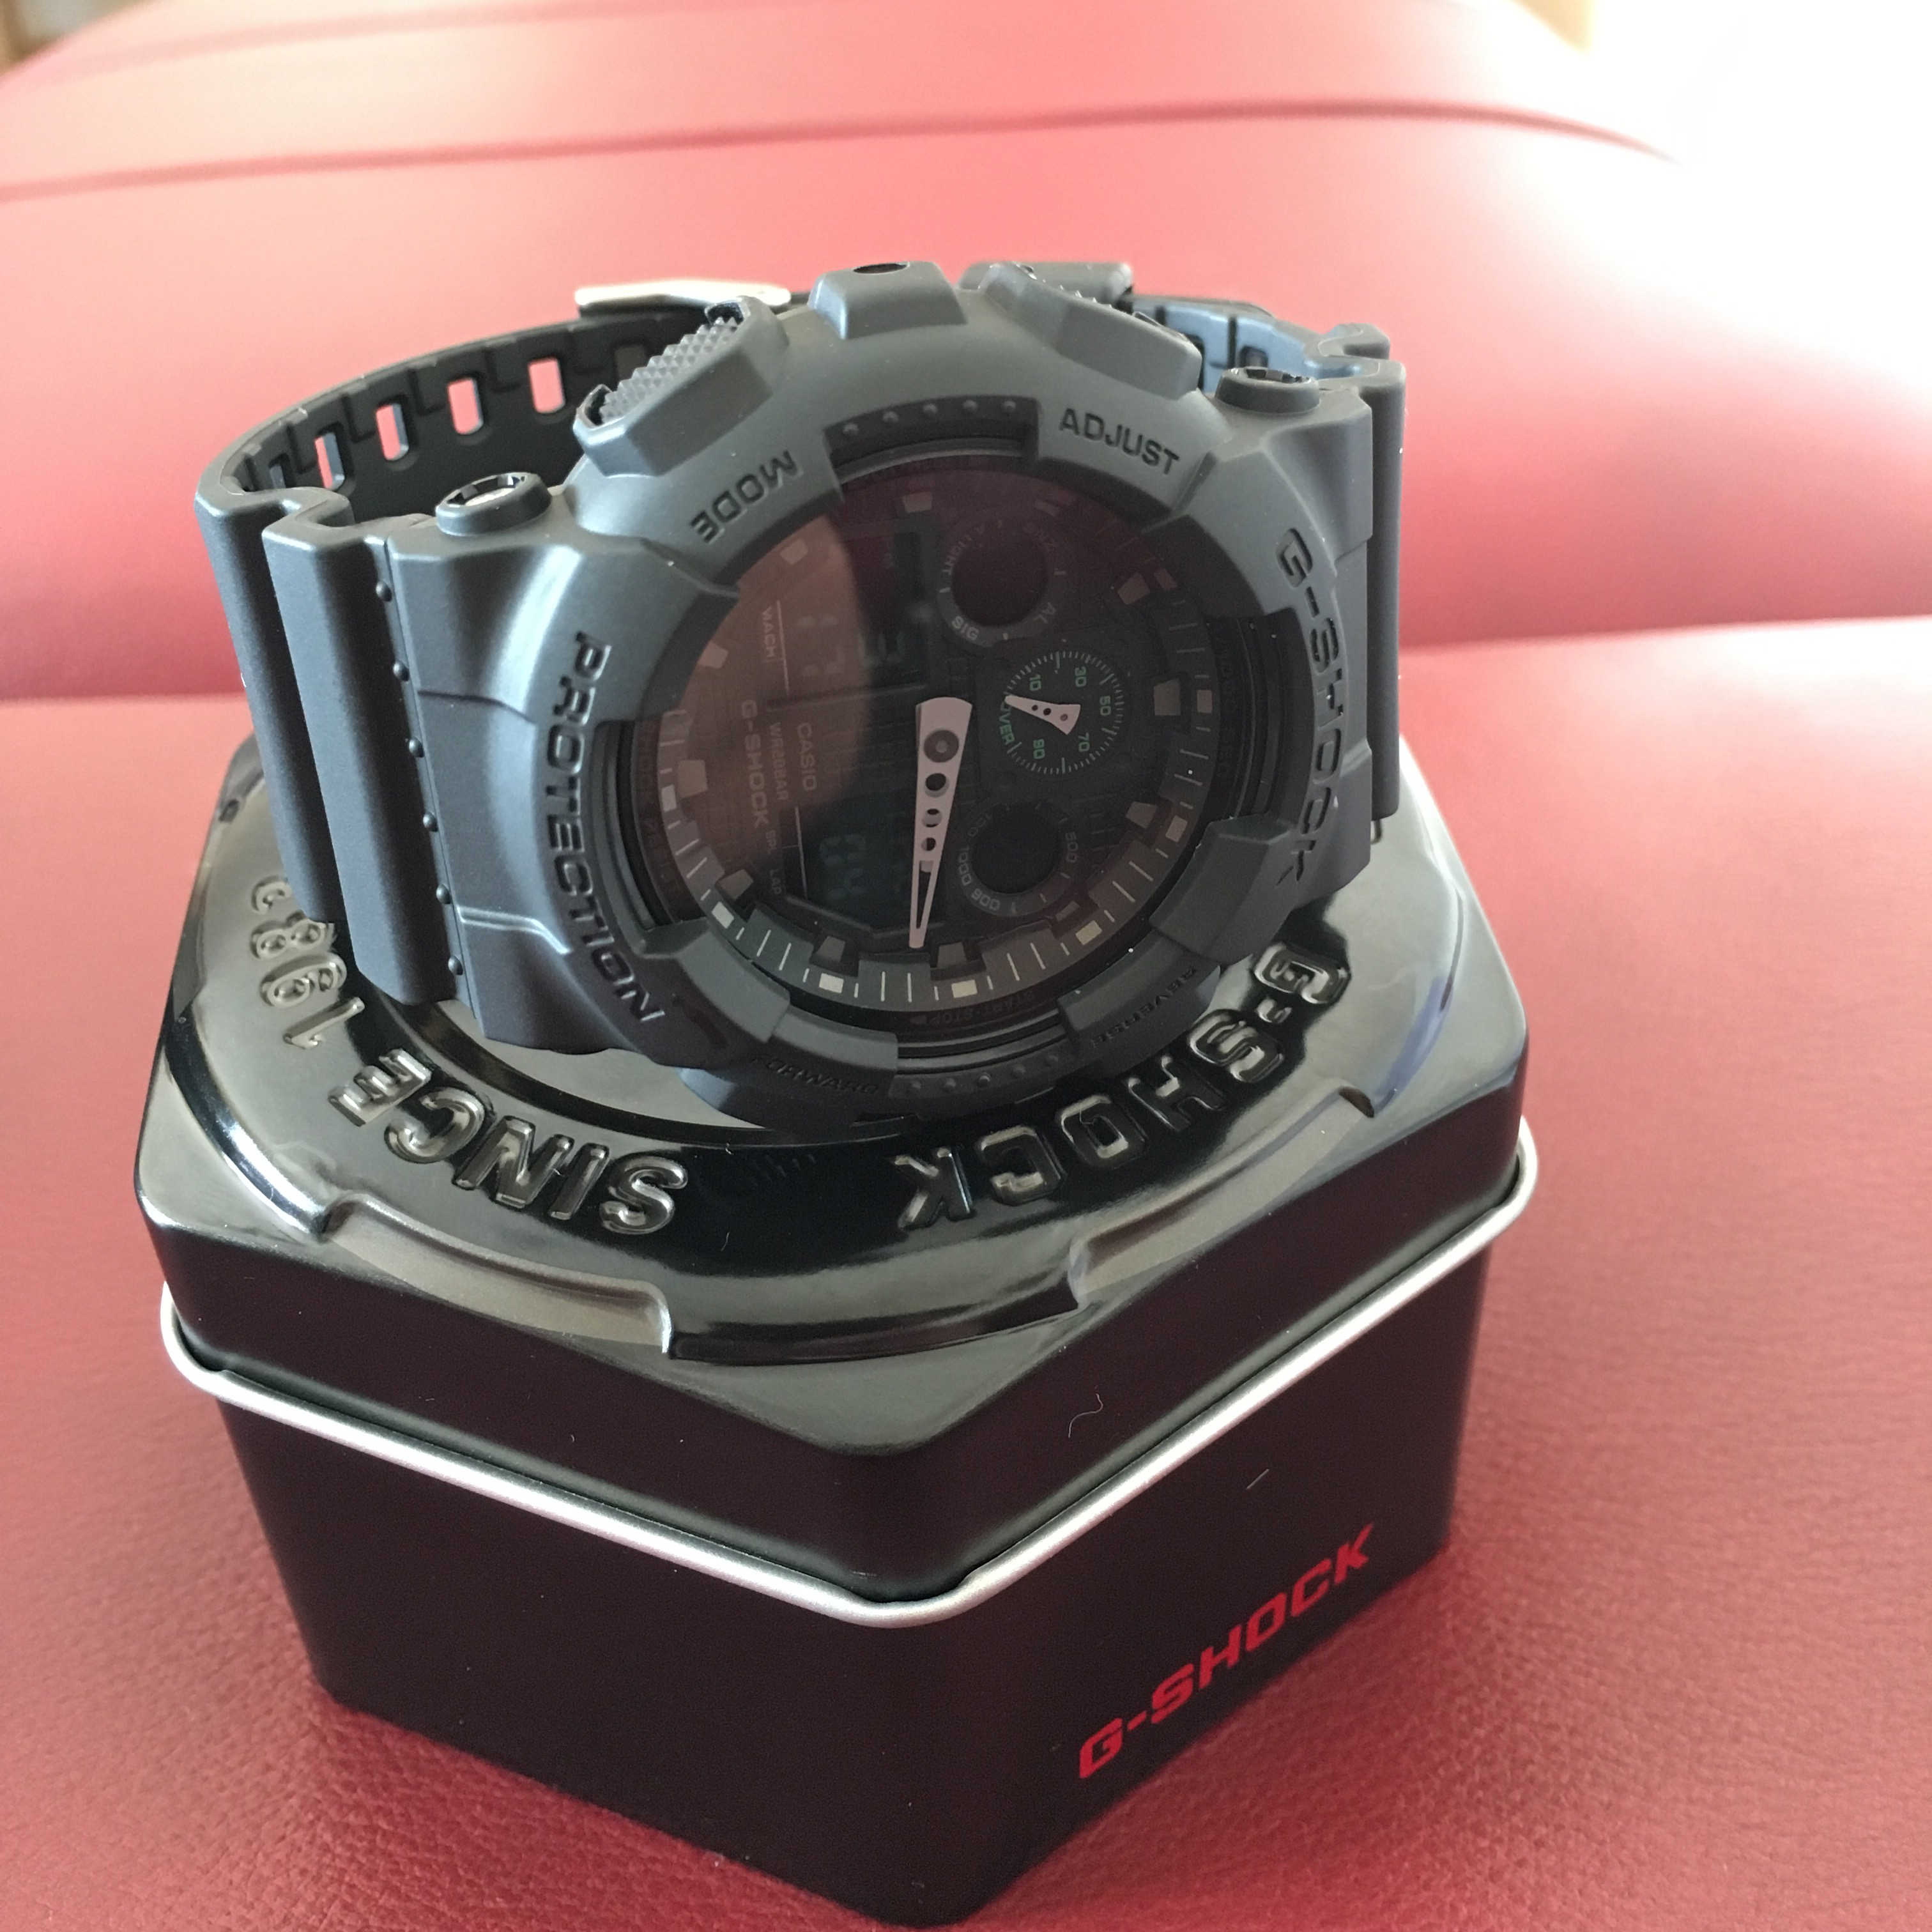 Gents Casio G Shock Military Black Alarm Chronograph Watch Ga 100mb Gshock Original Ga100mb 1adr Excellent For The Price